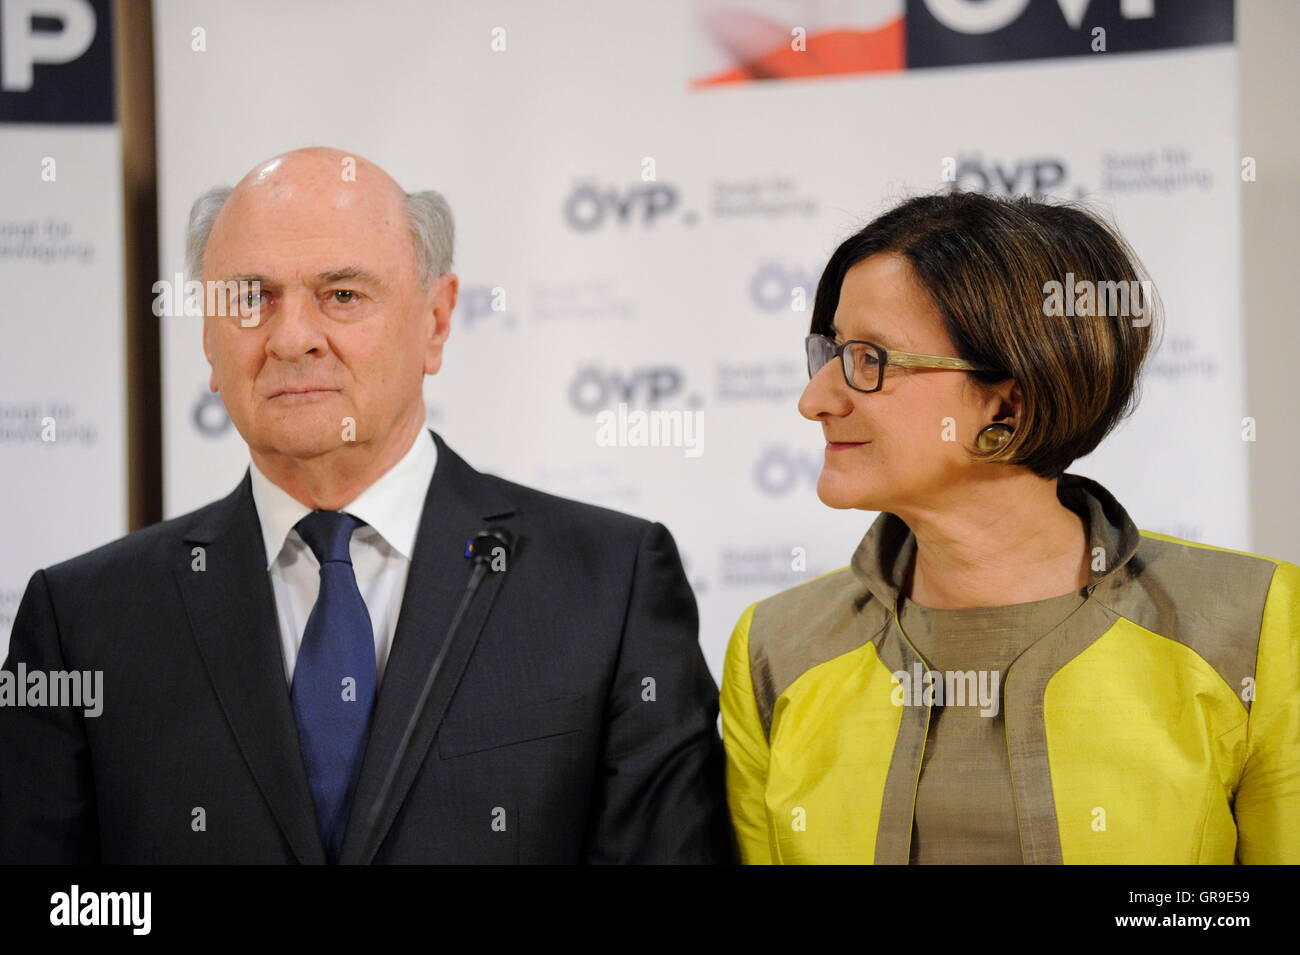 The Lower Austria Governor Erwin Pröll And Ex-Interior Minister Johanna Mikl-Leitner - Stock Image